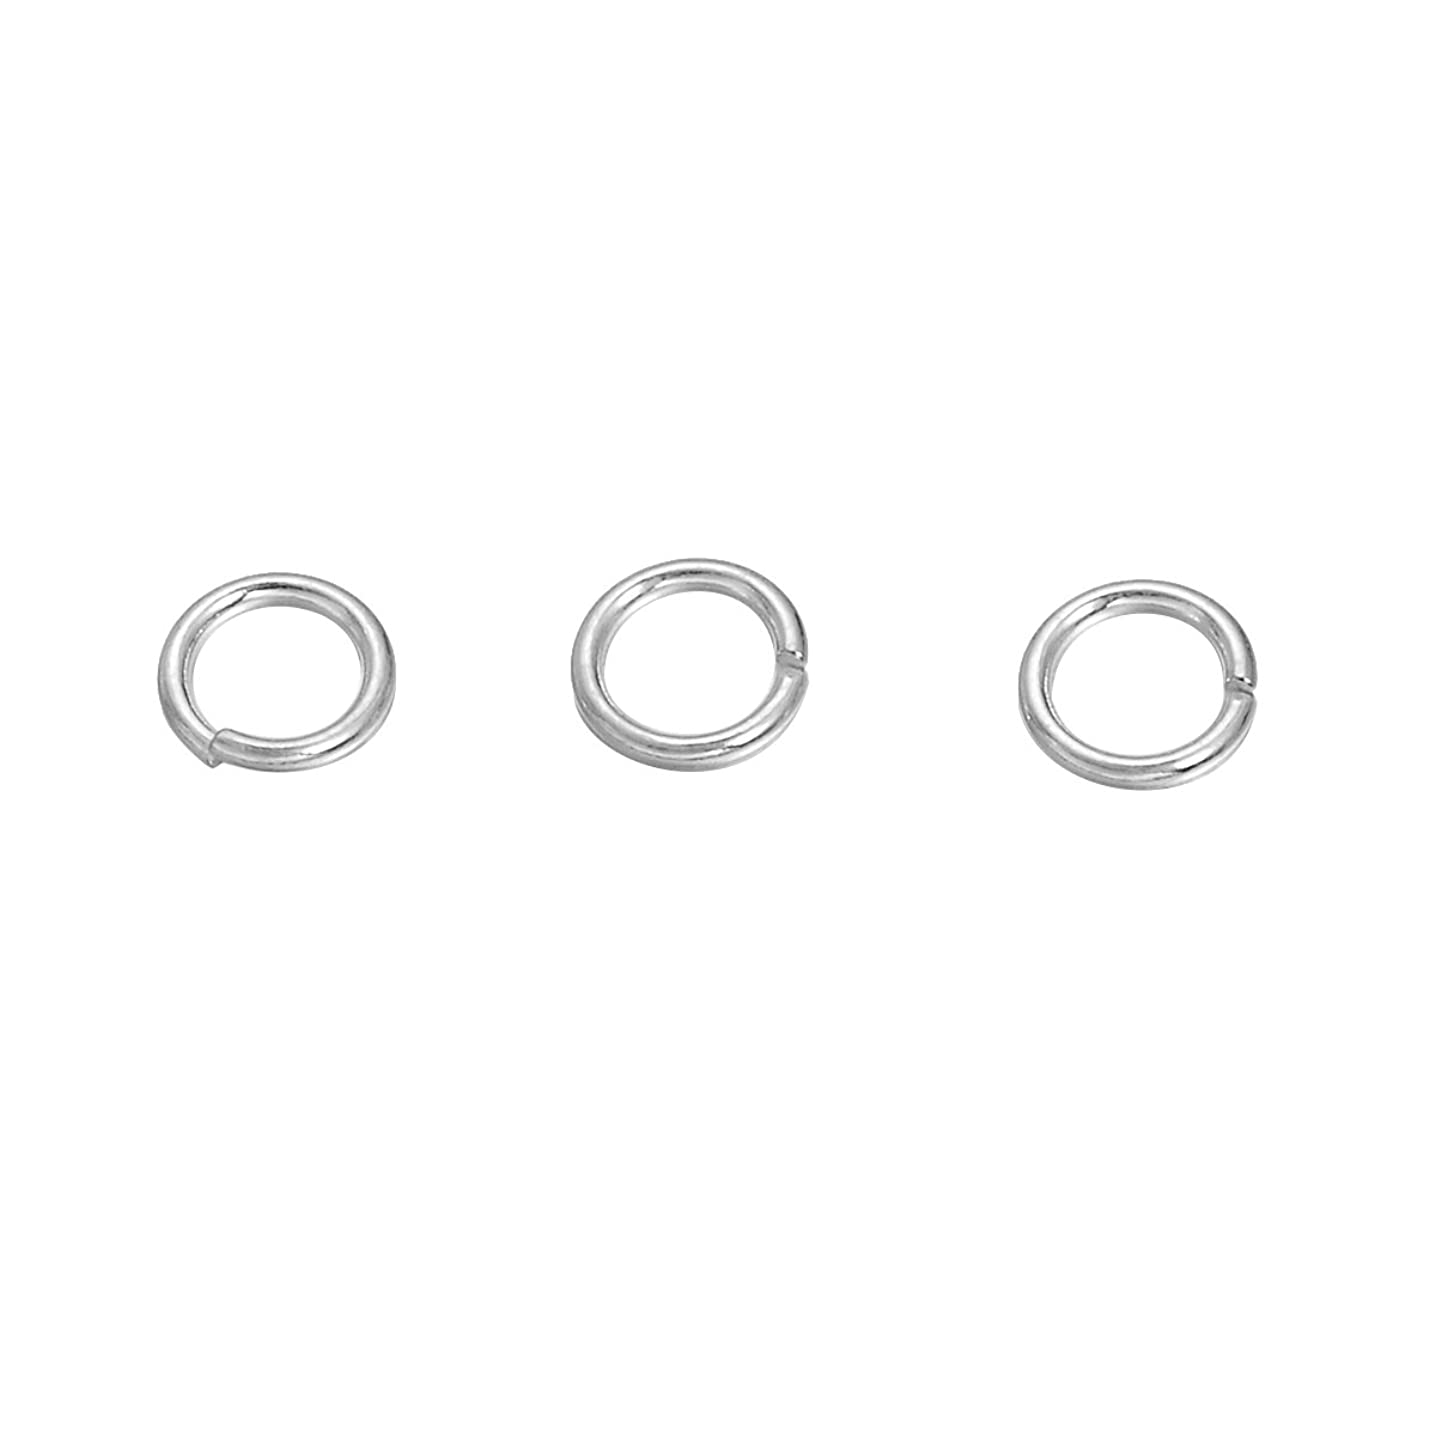 VALYRIA 50pcs Sterling Silver Open Jump Rings for Jewelry Making Findings,5mmx0.5mm